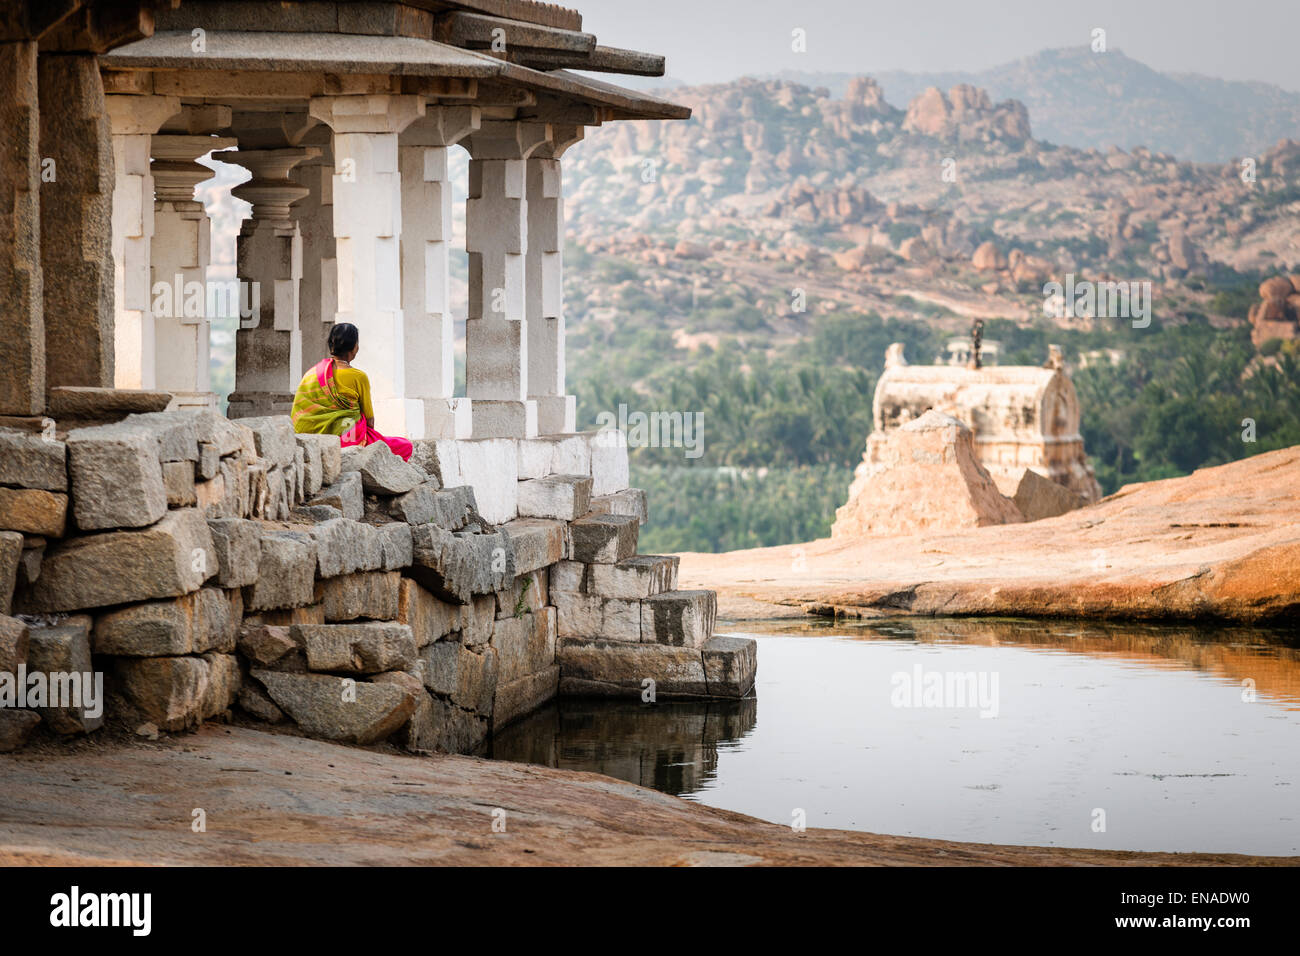 A woman sitting in some ancient ruins in Hampi. - Stock Image